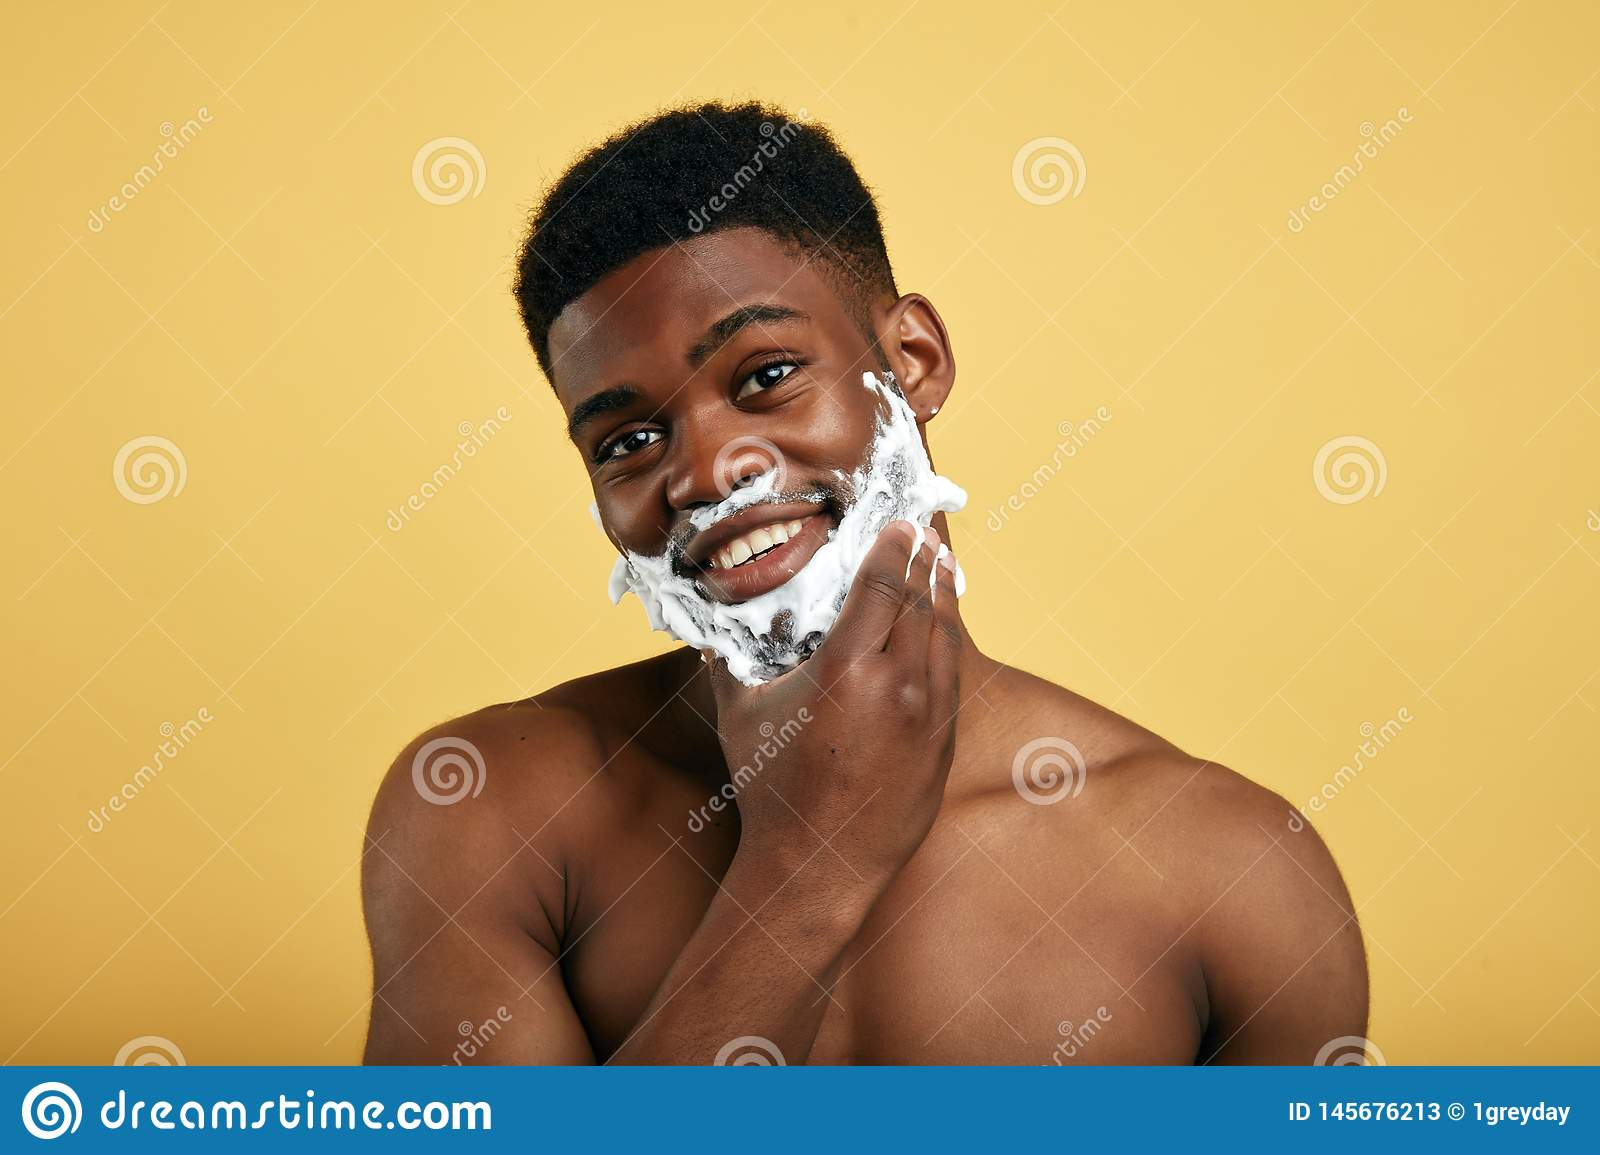 Positive shirtless man with shaving foam having a shower, touching his chin